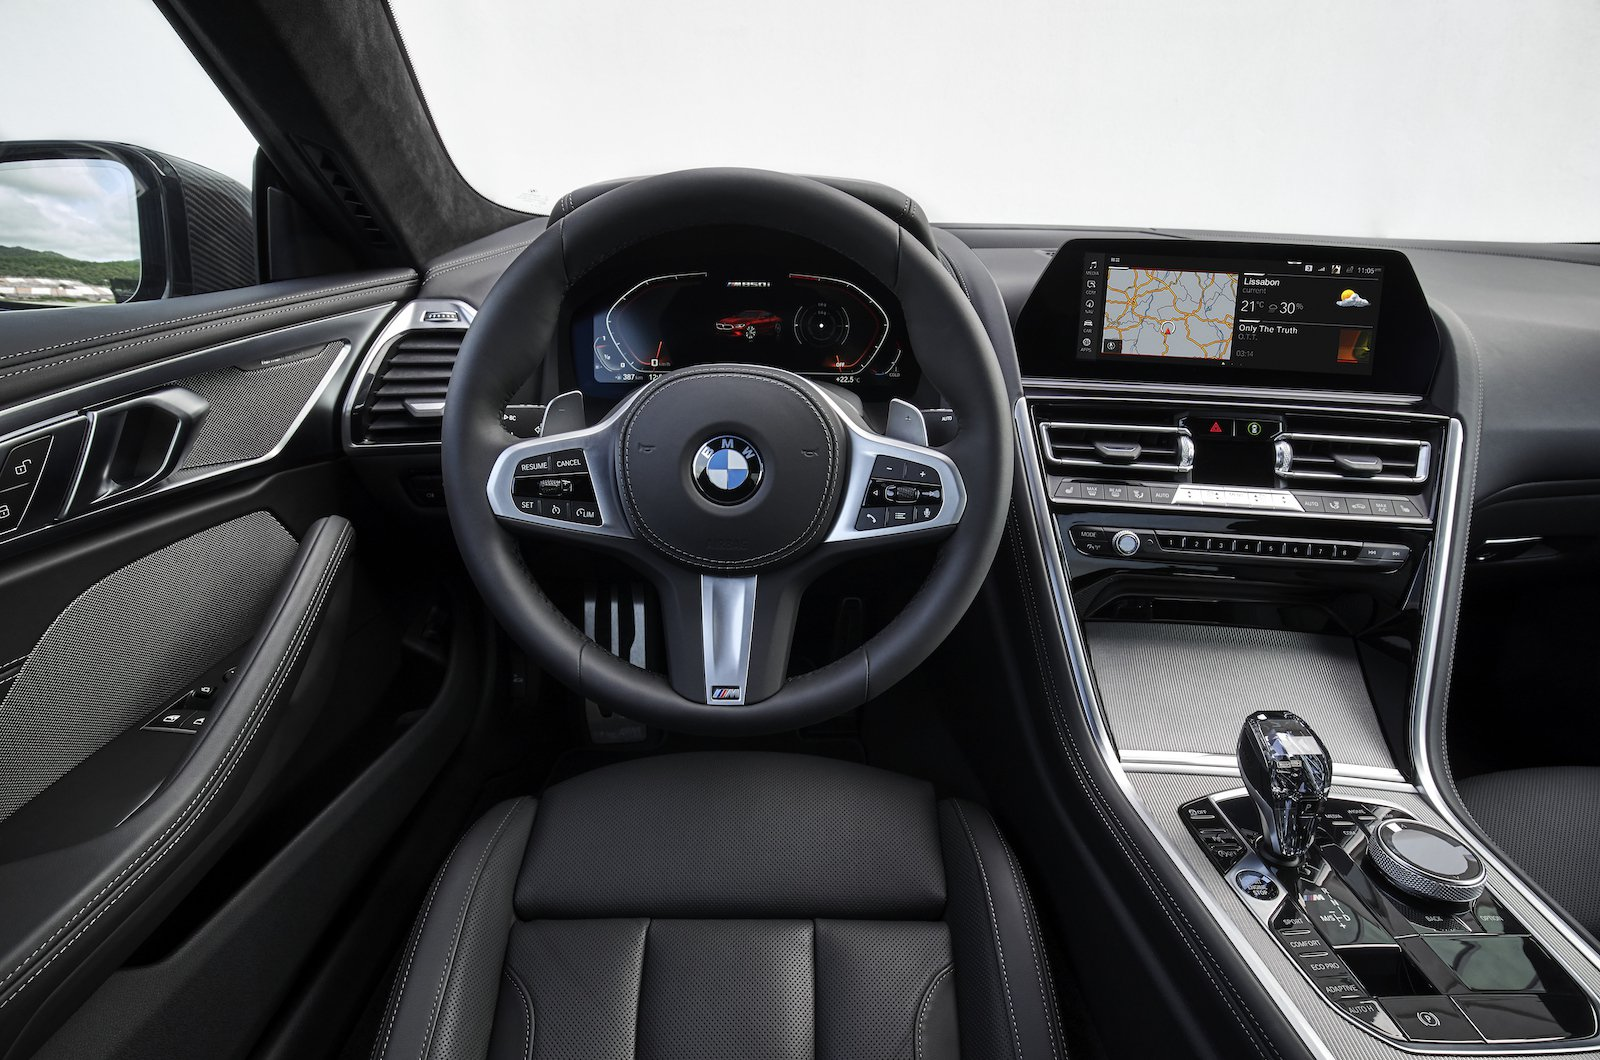 BMW 8 Series Driving Position